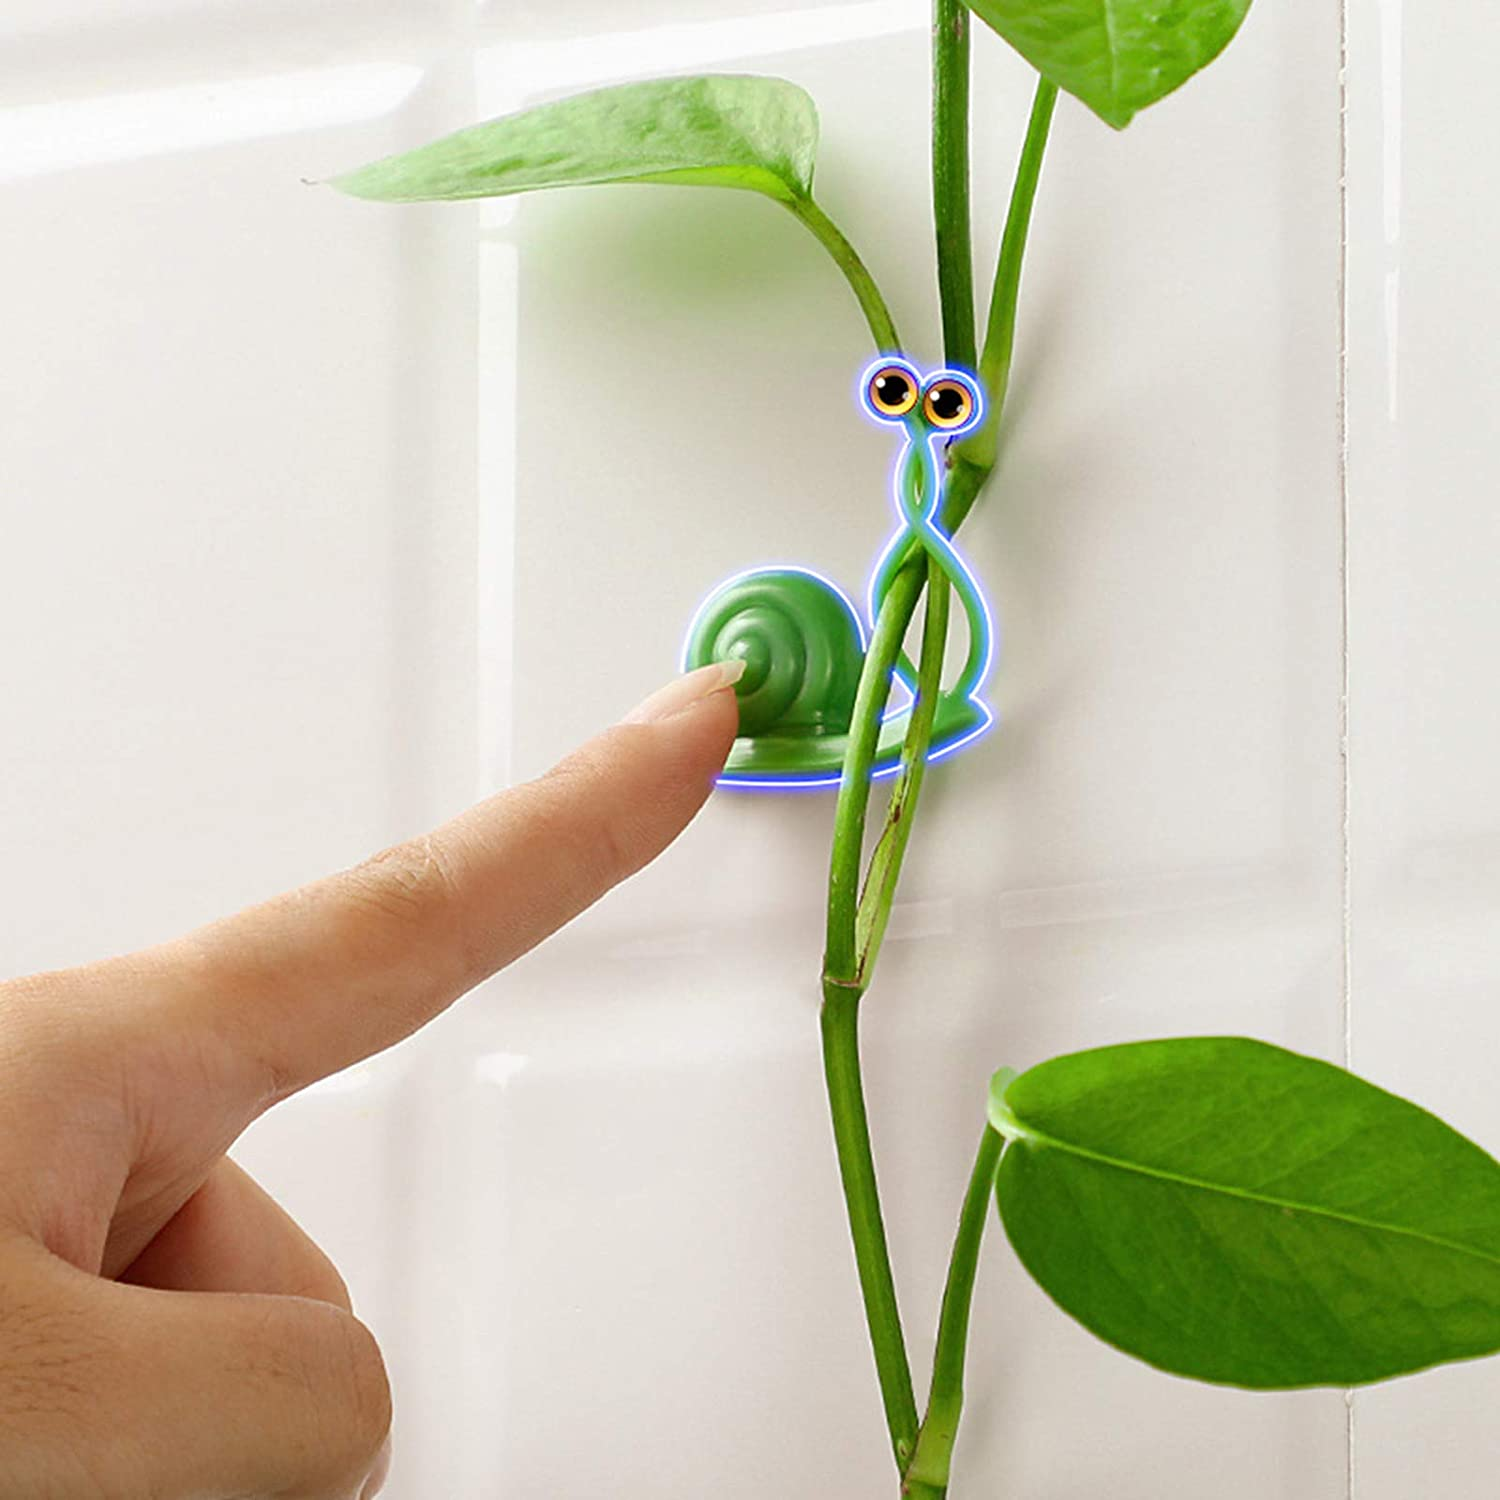 Plant Climbing Wall Fixture Clips, Green Cute Snail Wall Hook, Invisible Plants Climbing Wall Support,Self-Adhesive Snap for Wire Fixing, Vines Grow Upright and Home Decor (Cute Snail)